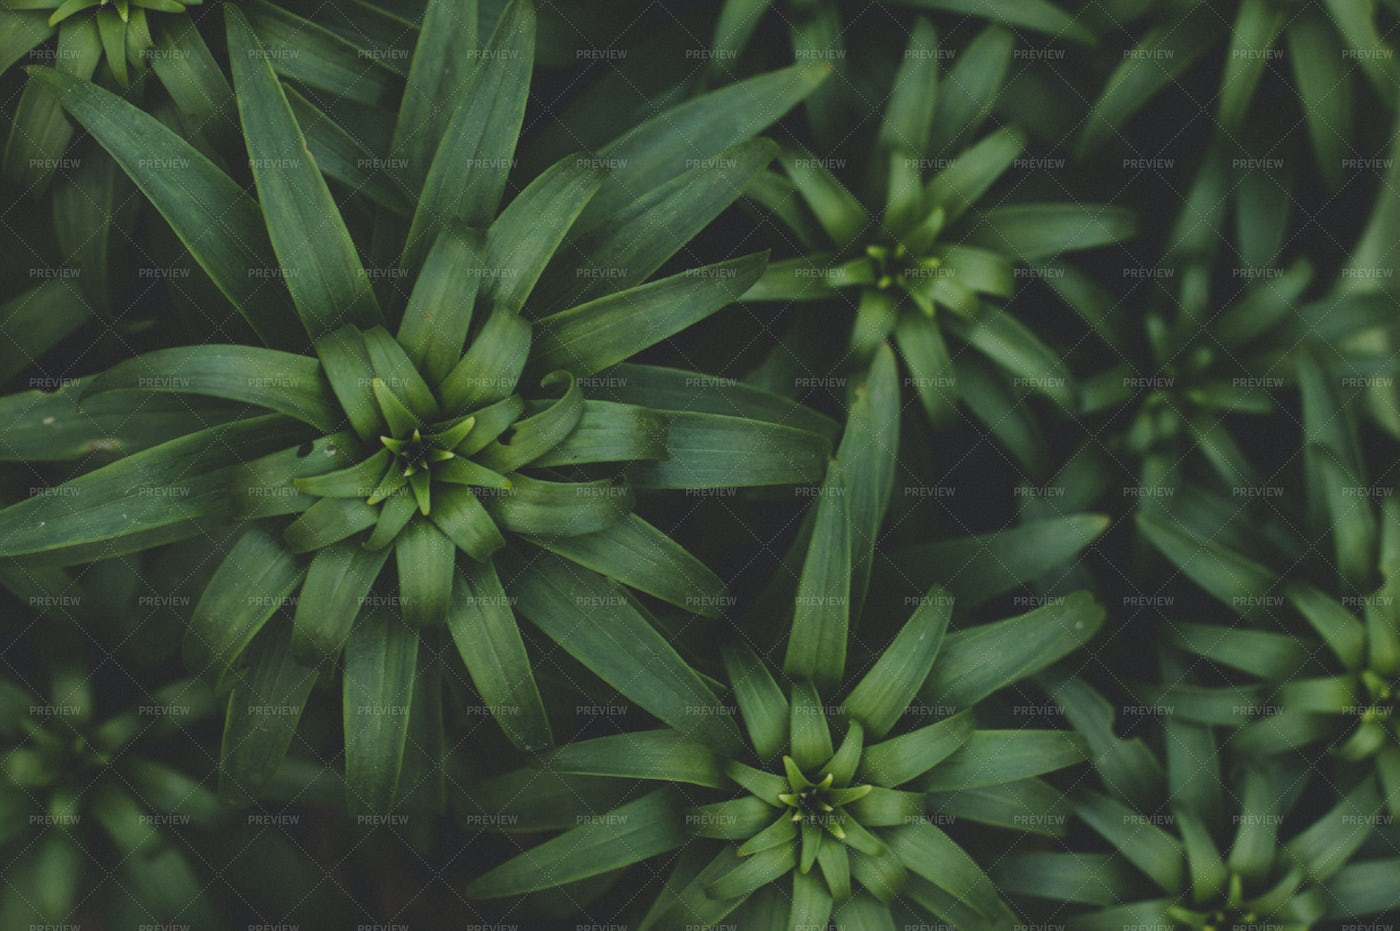 Background Of Fresh Green Lily Leaves: Stock Photos